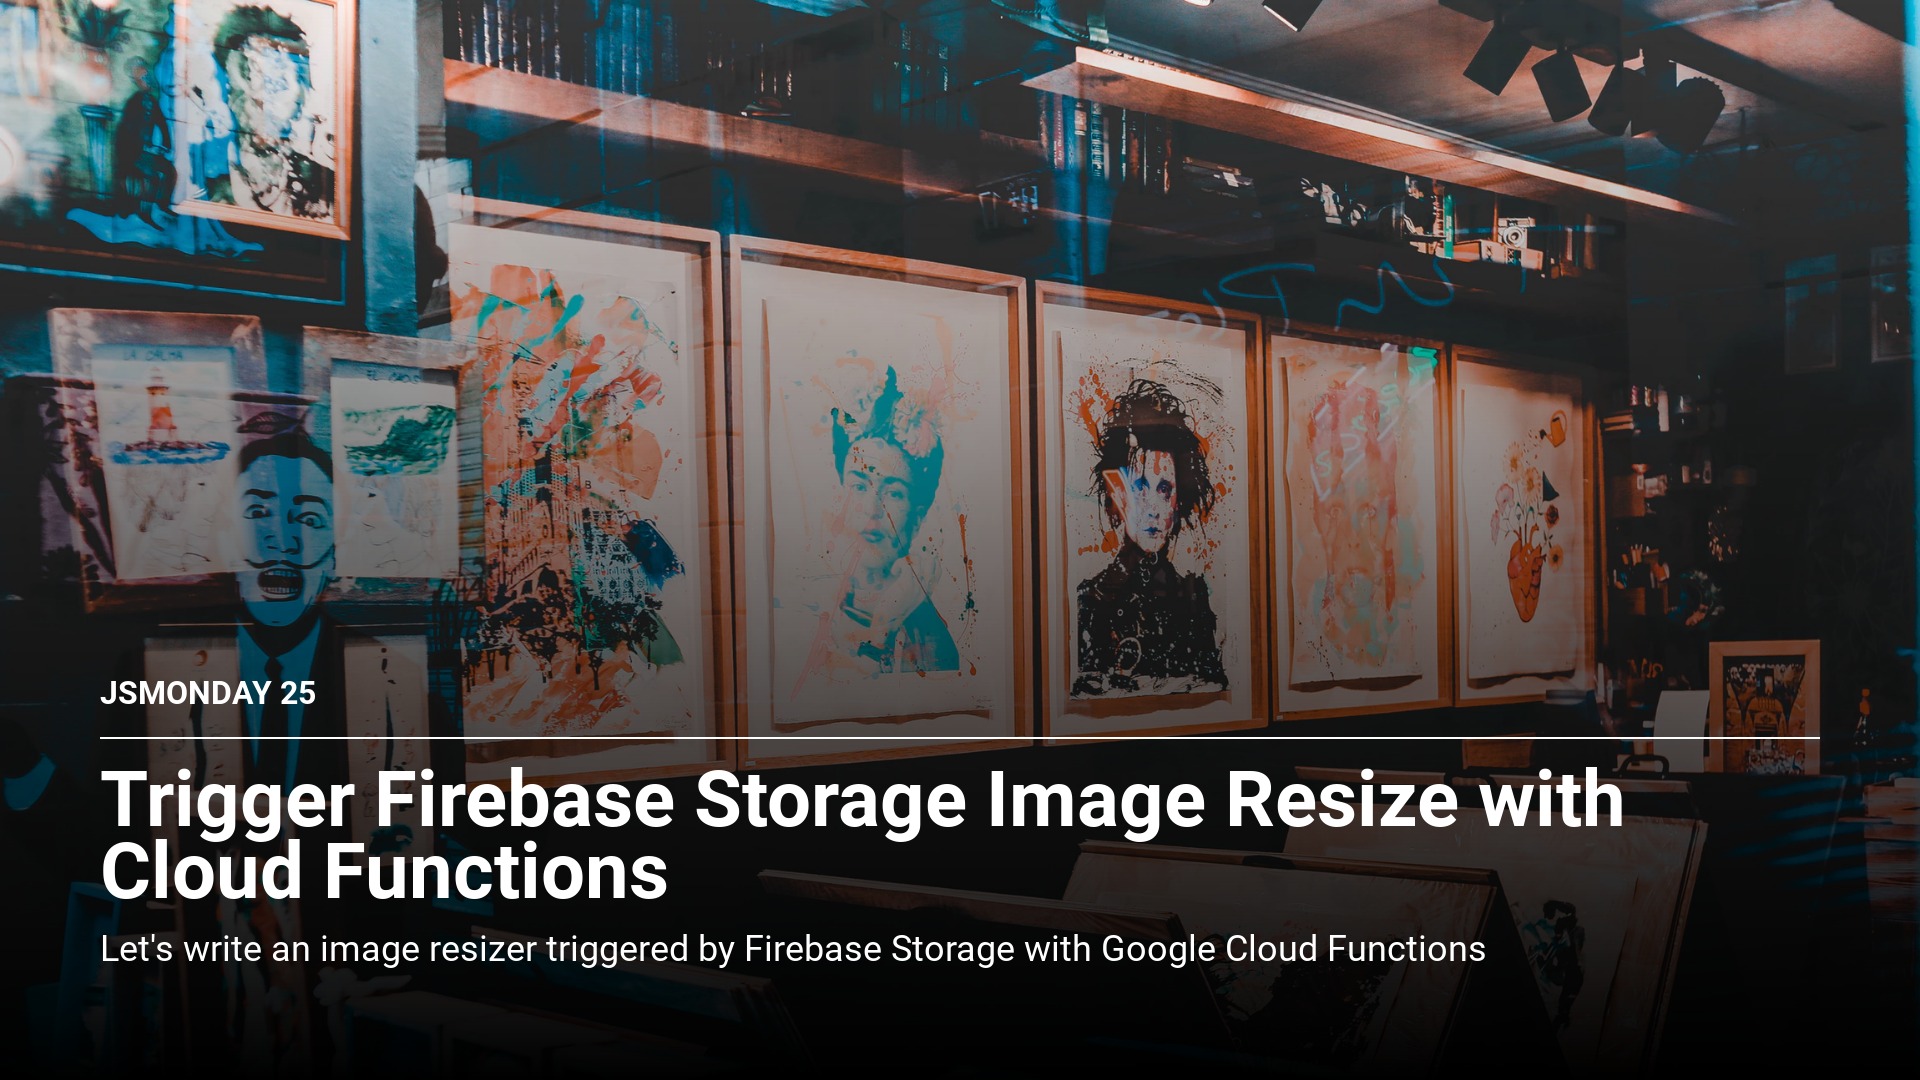 Trigger Firebase Storage Image Resize with Cloud Functions